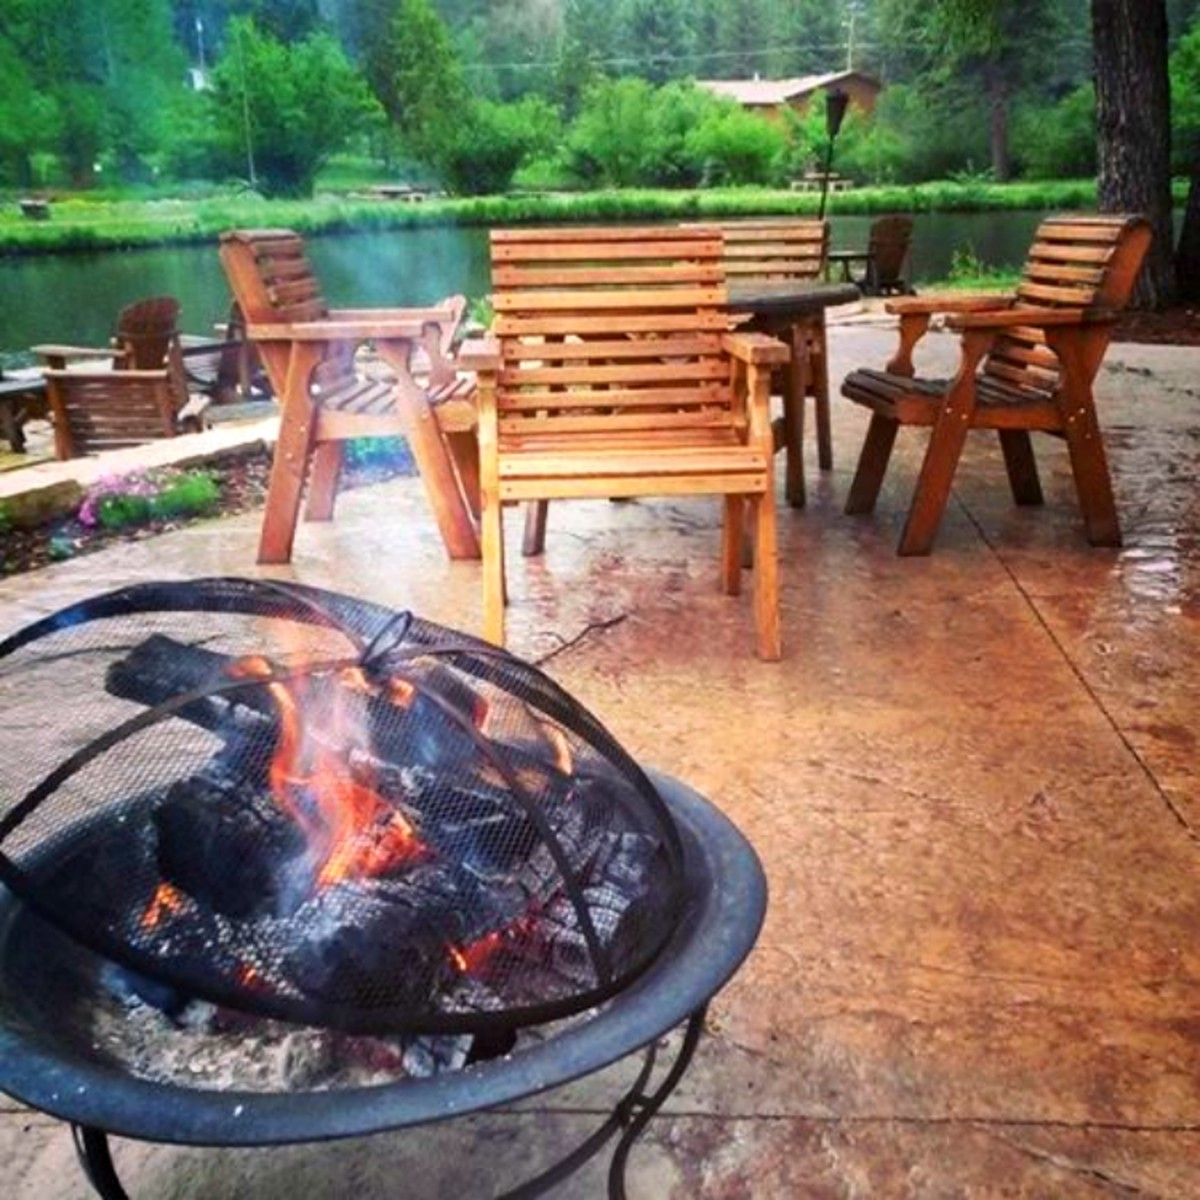 A fire and coffee in Estes Park